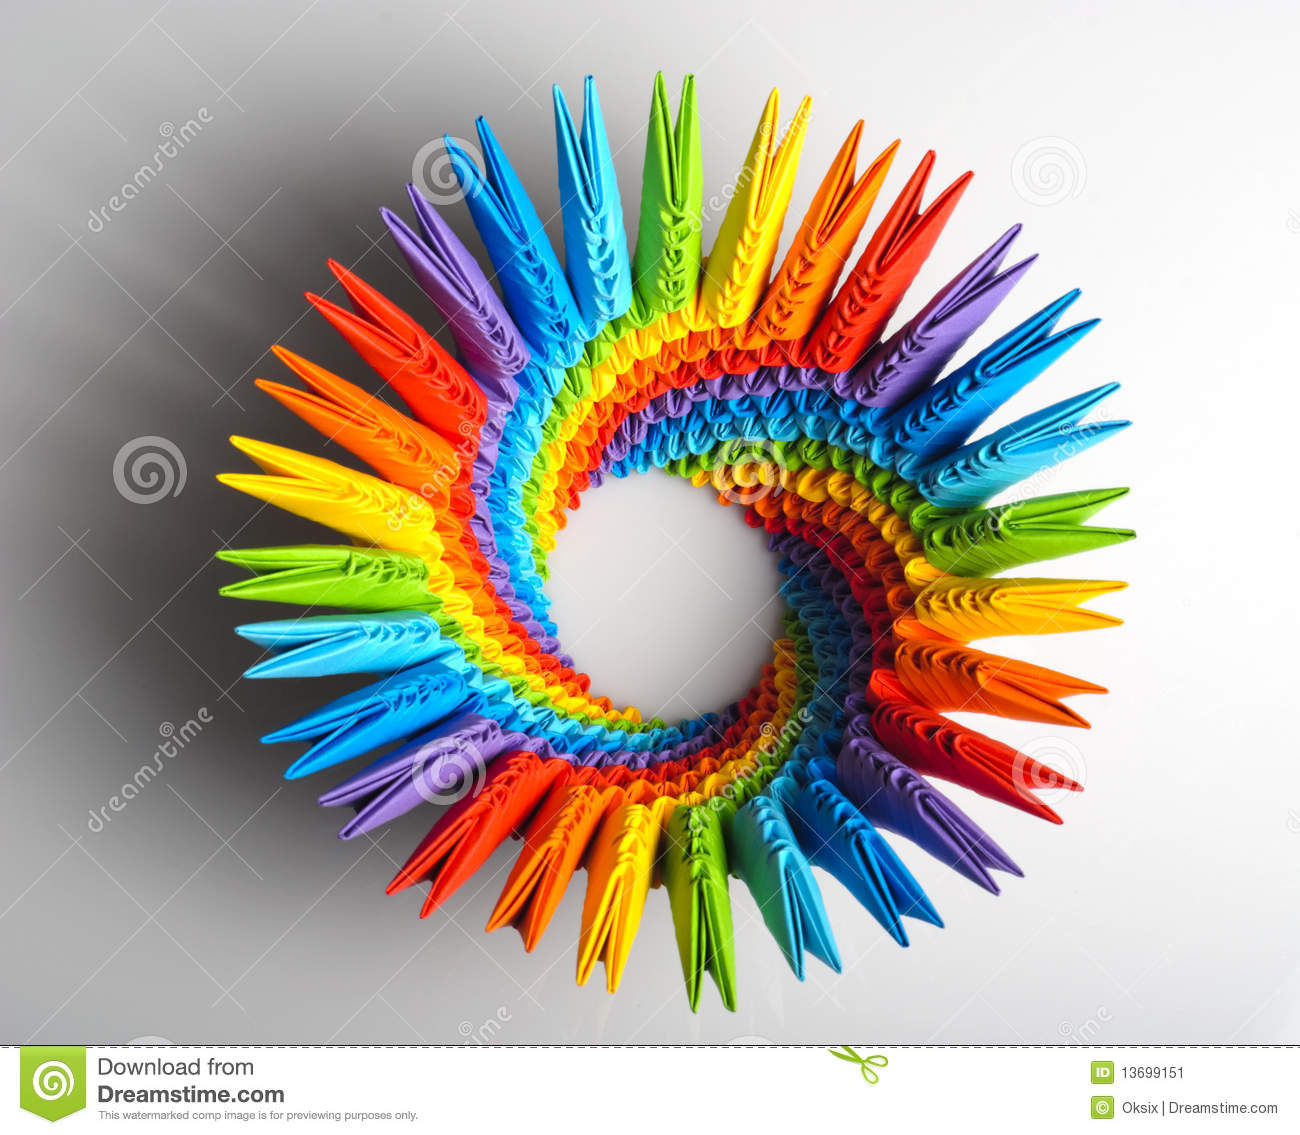 Colorfull origami 3d units like a rainbow circle isolated on white